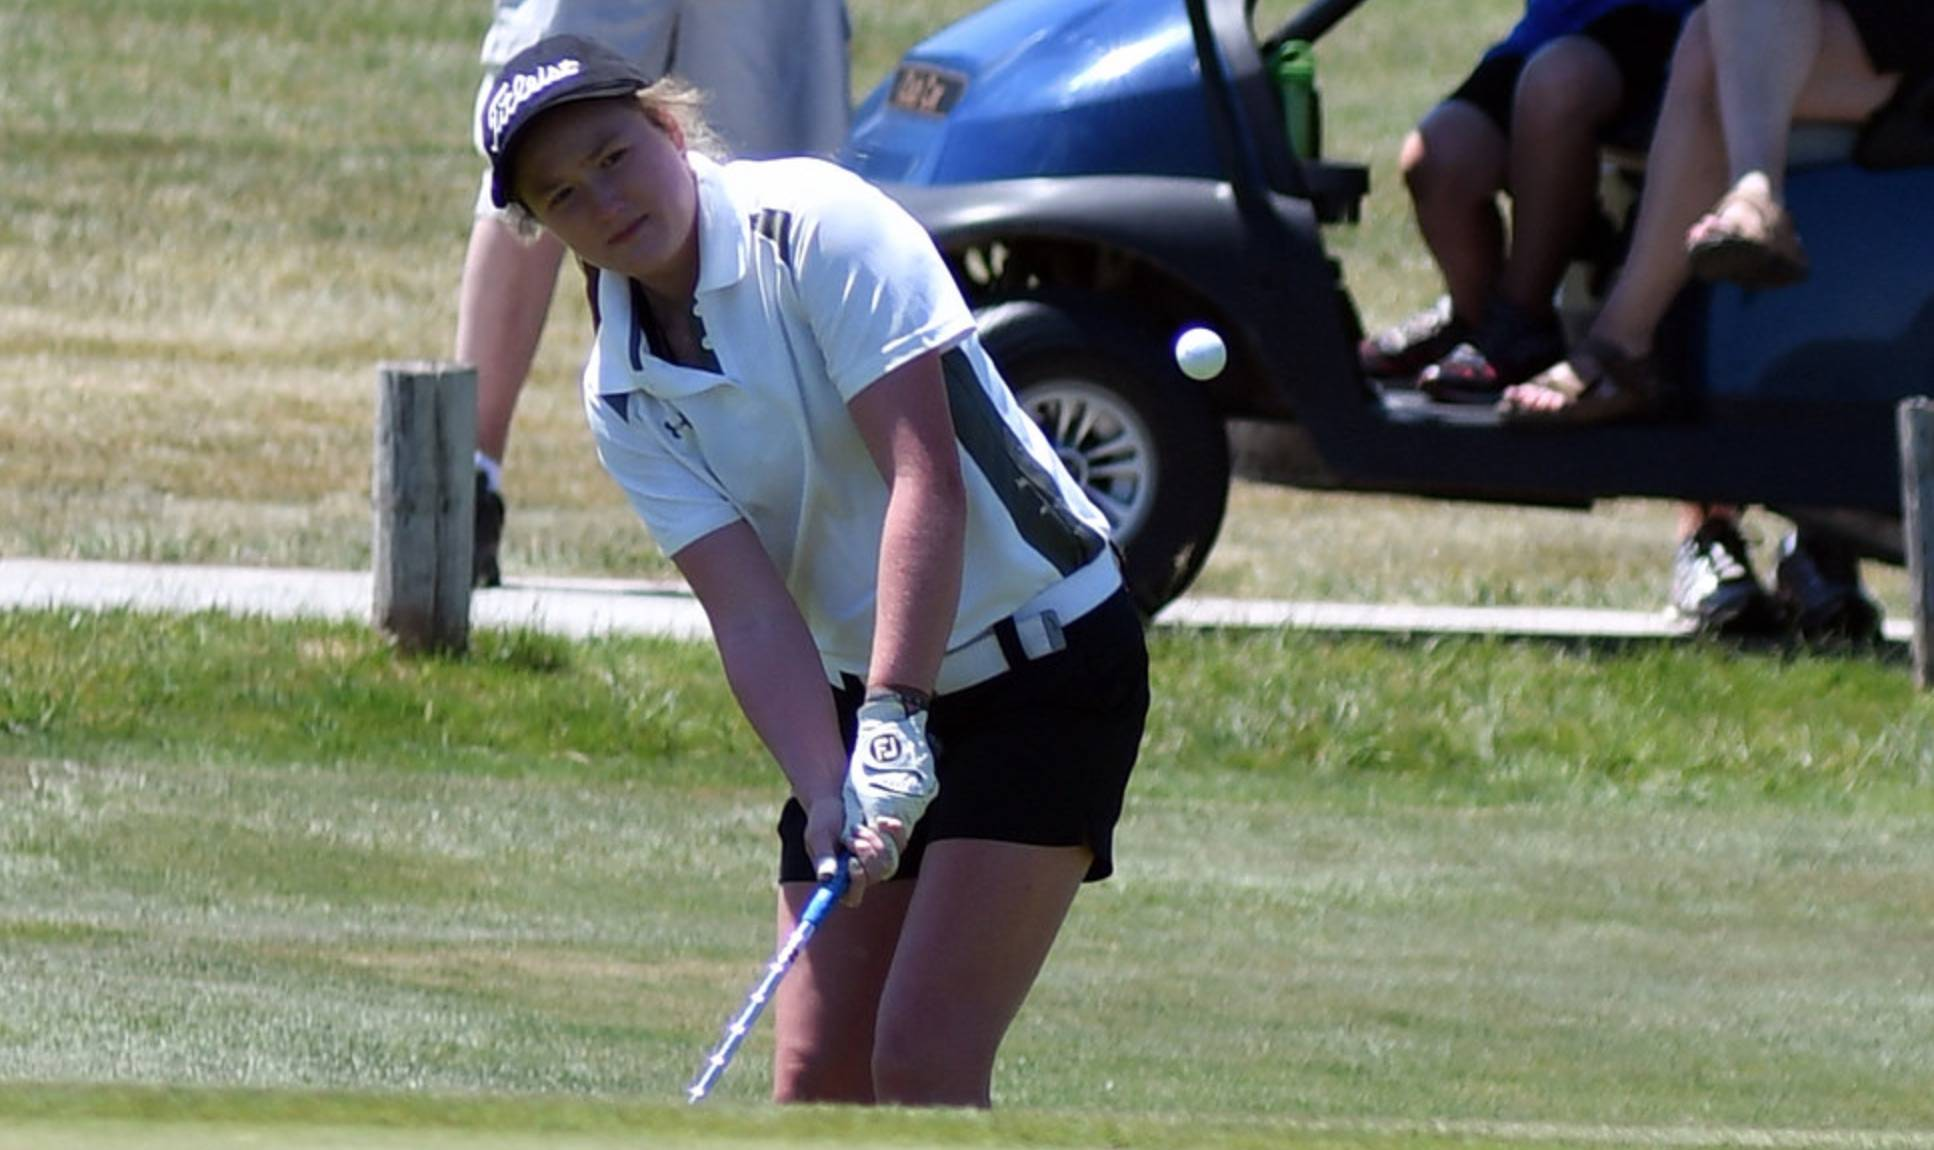 HS girls golf player